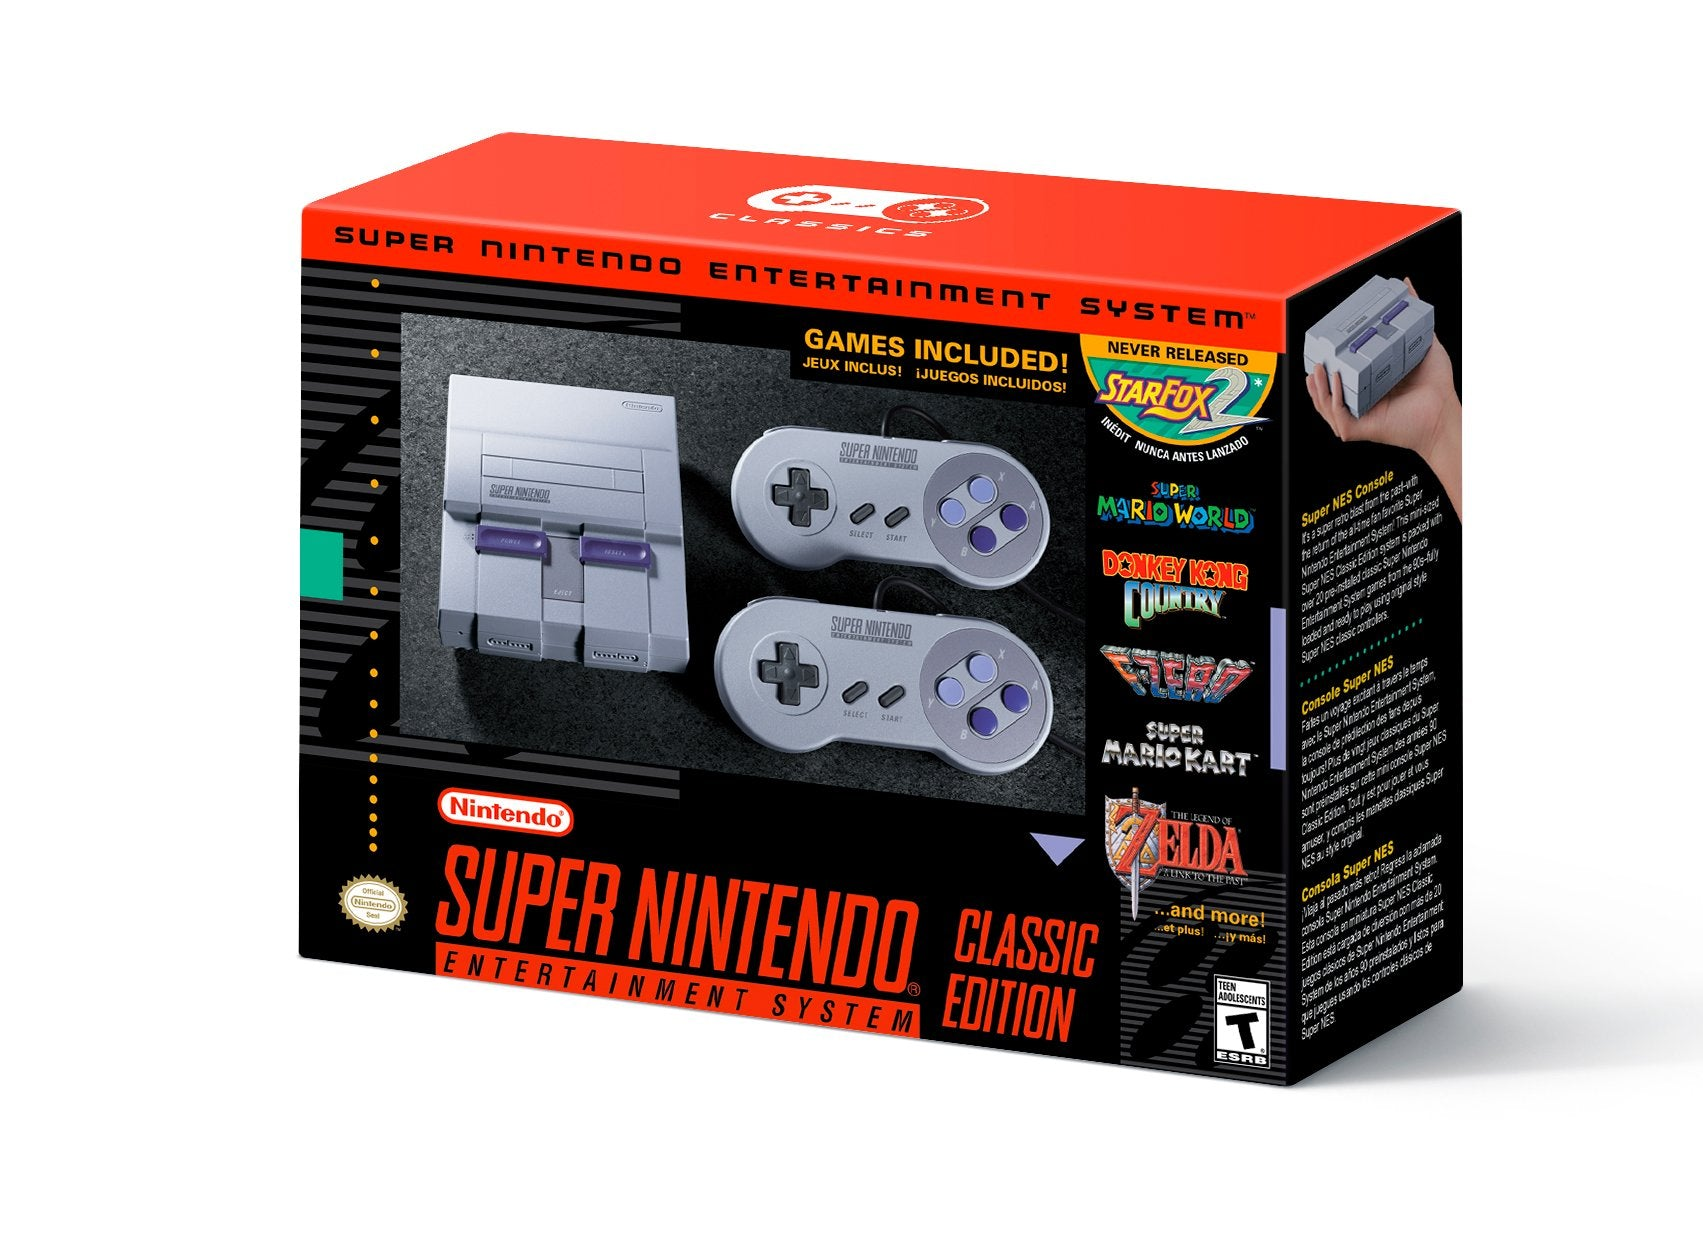 Super Nintendo Entertainment System: SNES Classic Edition - SNES Mini - LIMITED EDITION - US VERSION